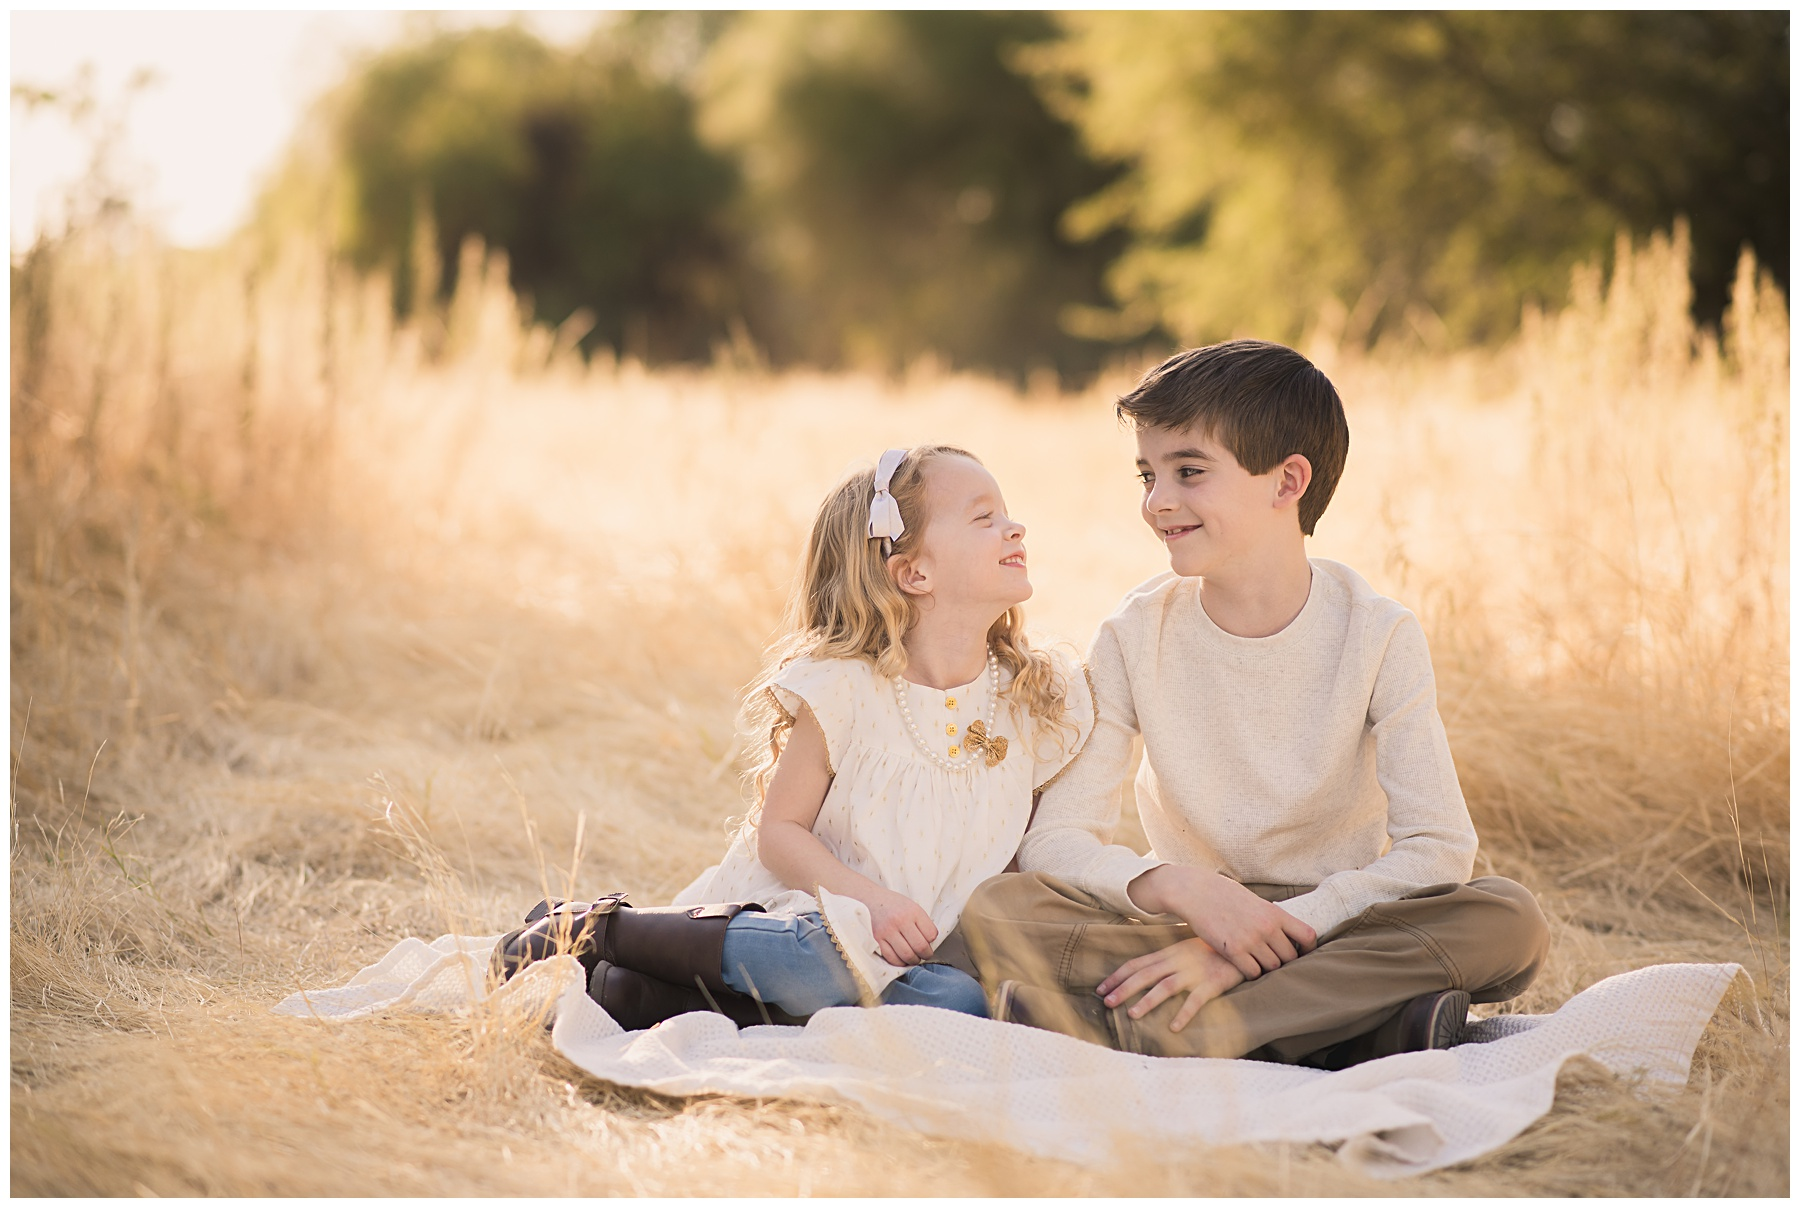 golden hour child portrait session | SweetLife Photography